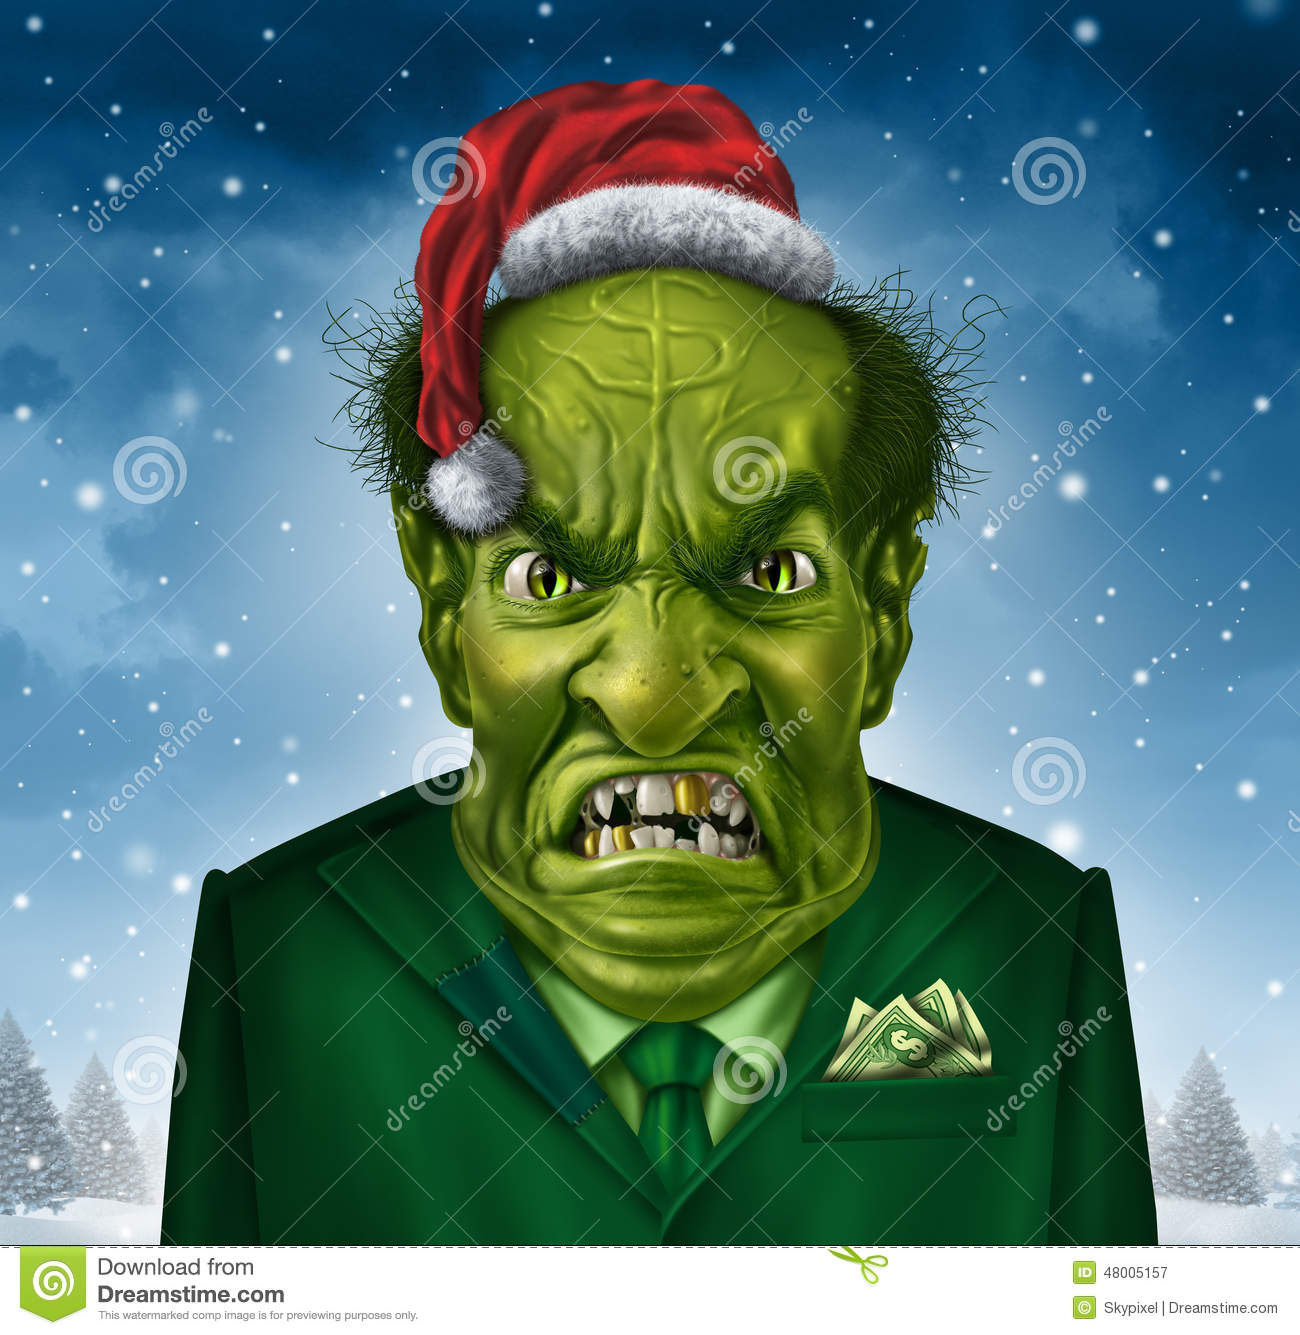 father christmas green suit